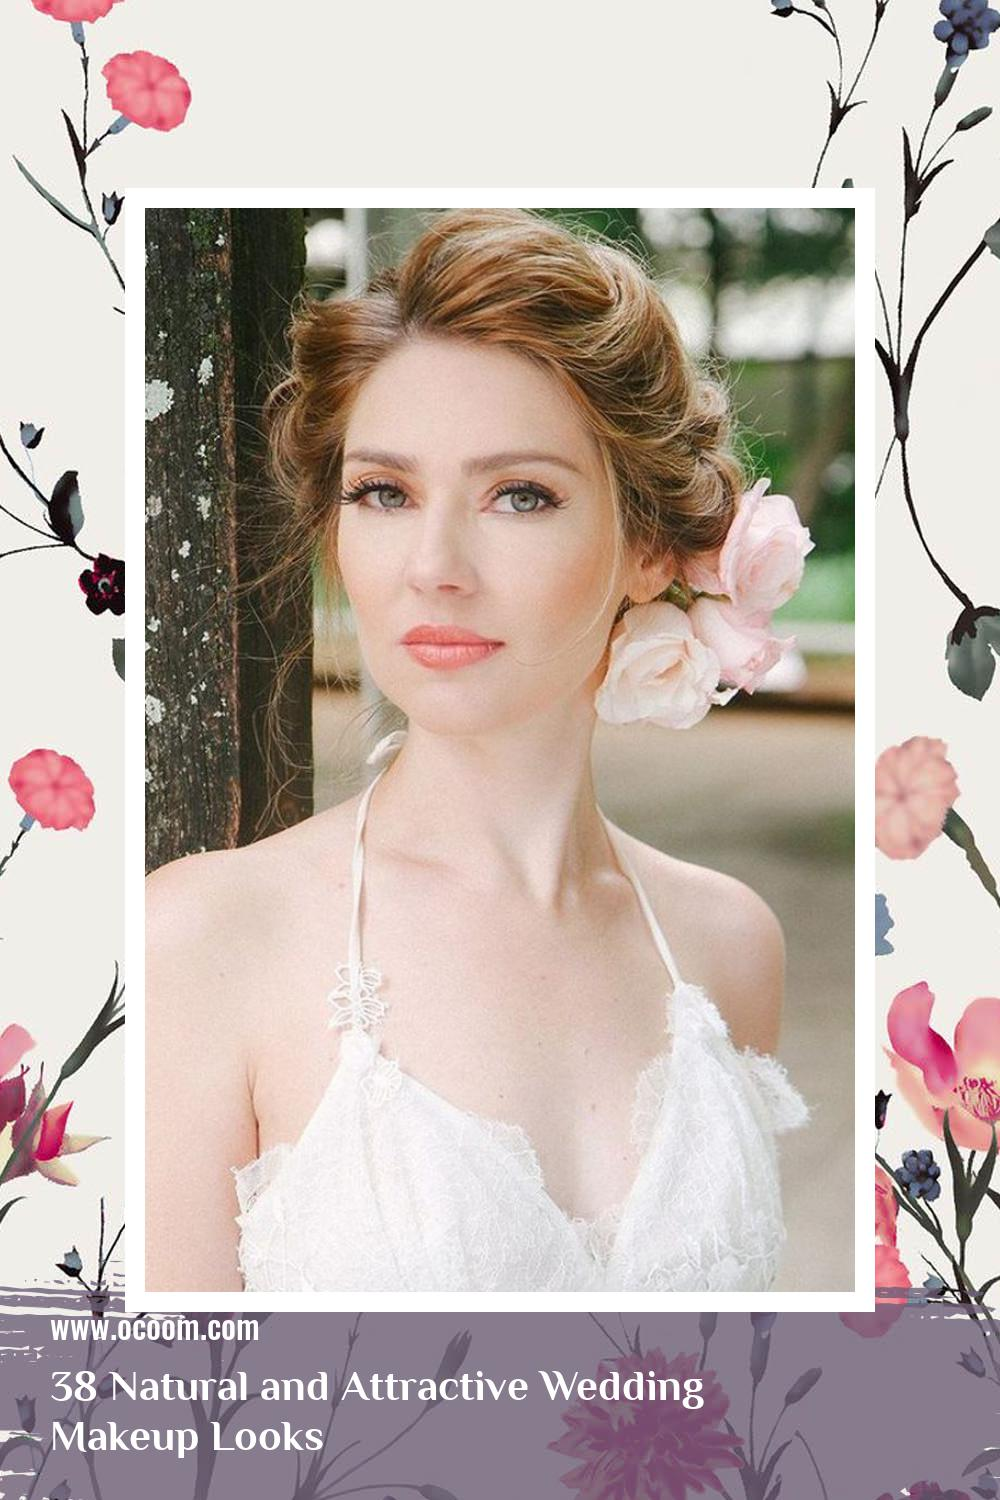 38 Natural and Attractive Wedding Makeup Looks 7